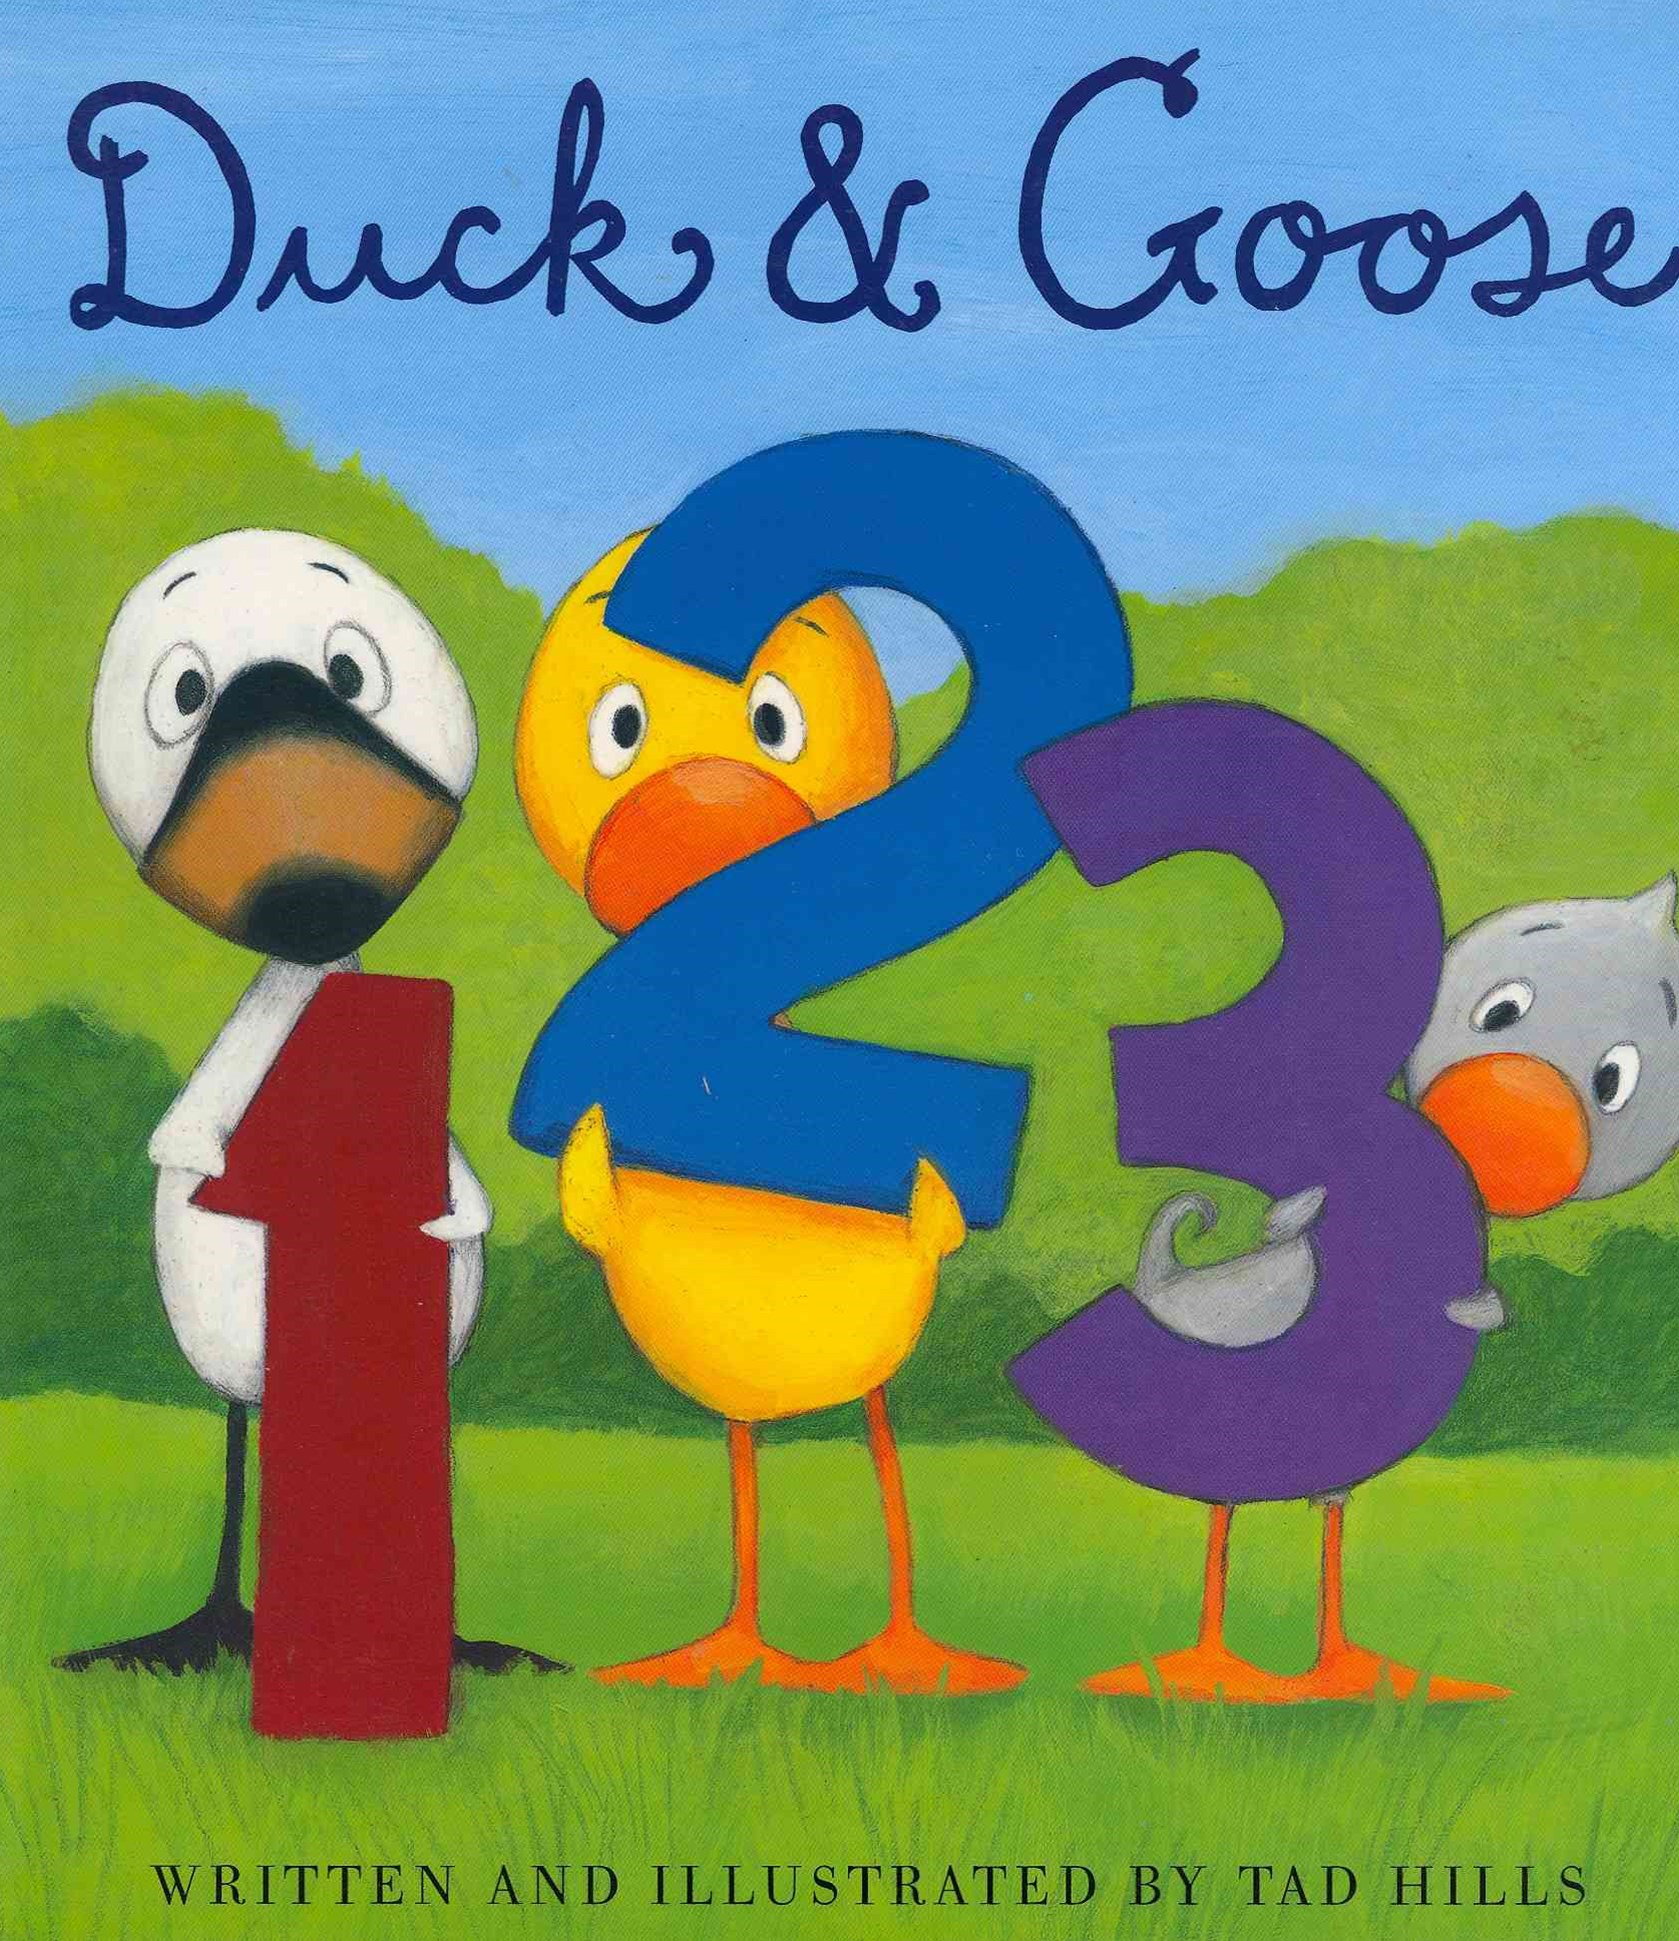 Duck and Goose 1,2,3